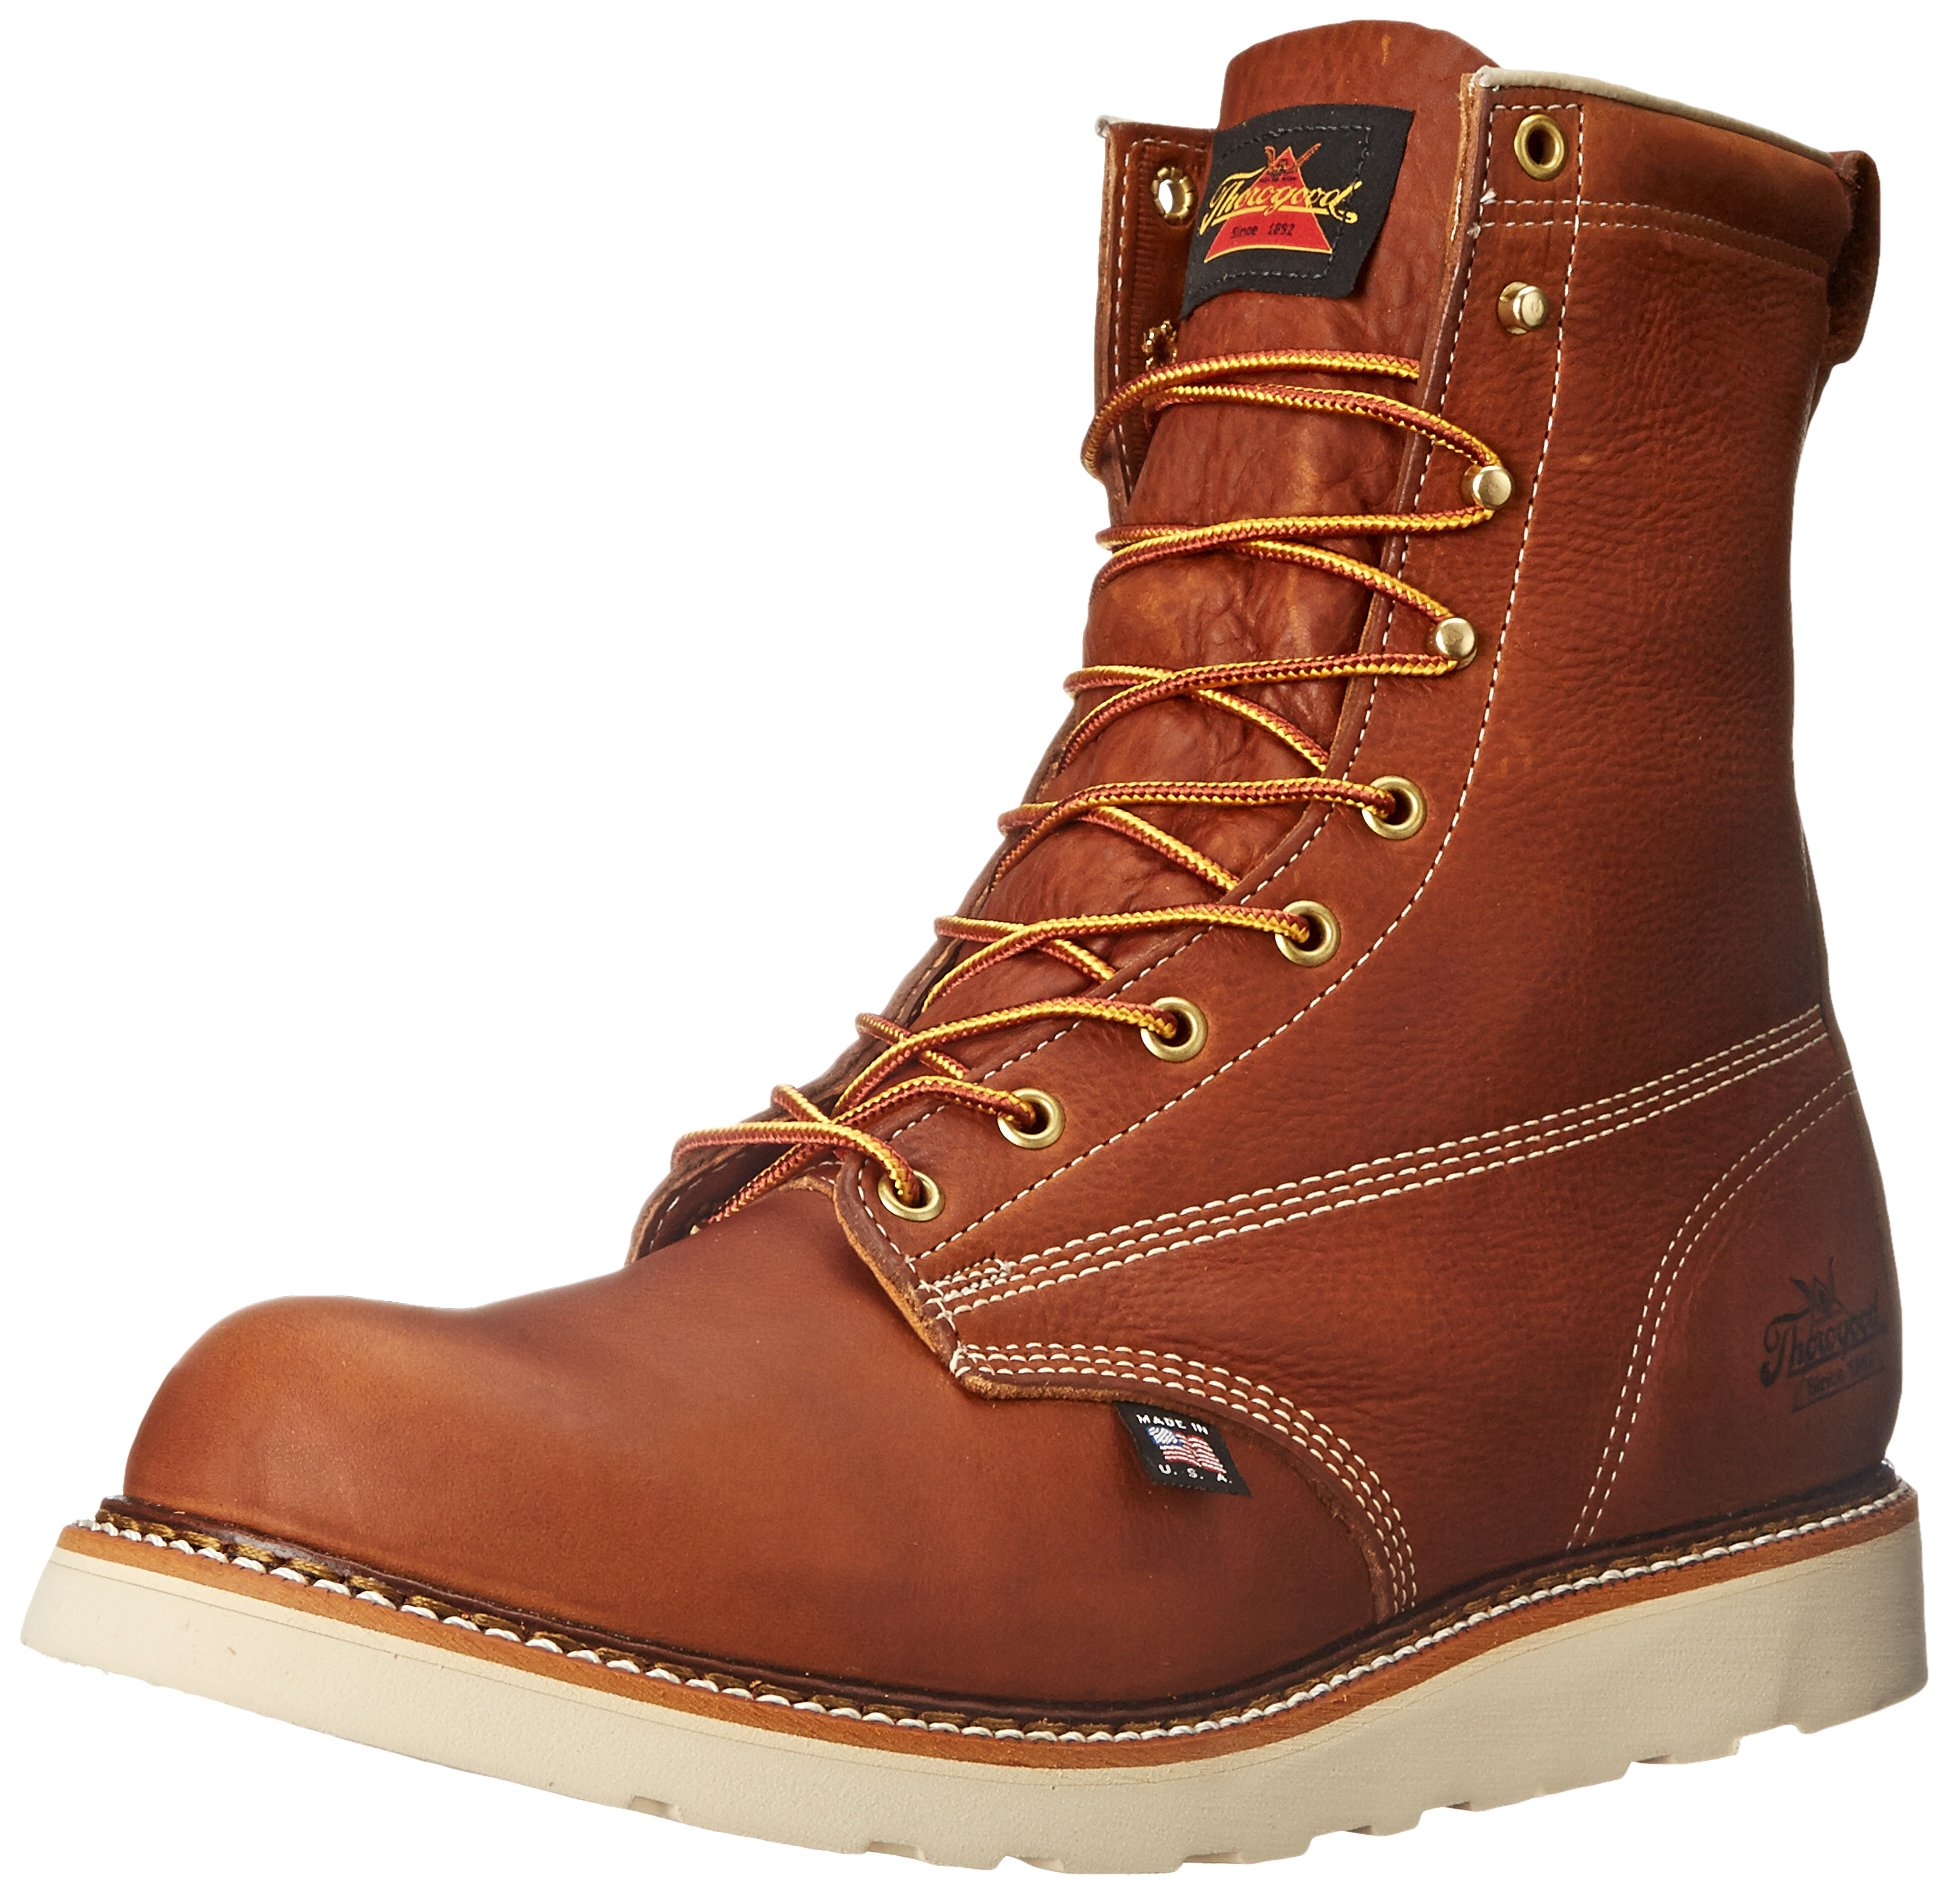 Thorogood American Heritage 8'' Plain Toe Boot, Tobacco Gladiator, 9.5 D US